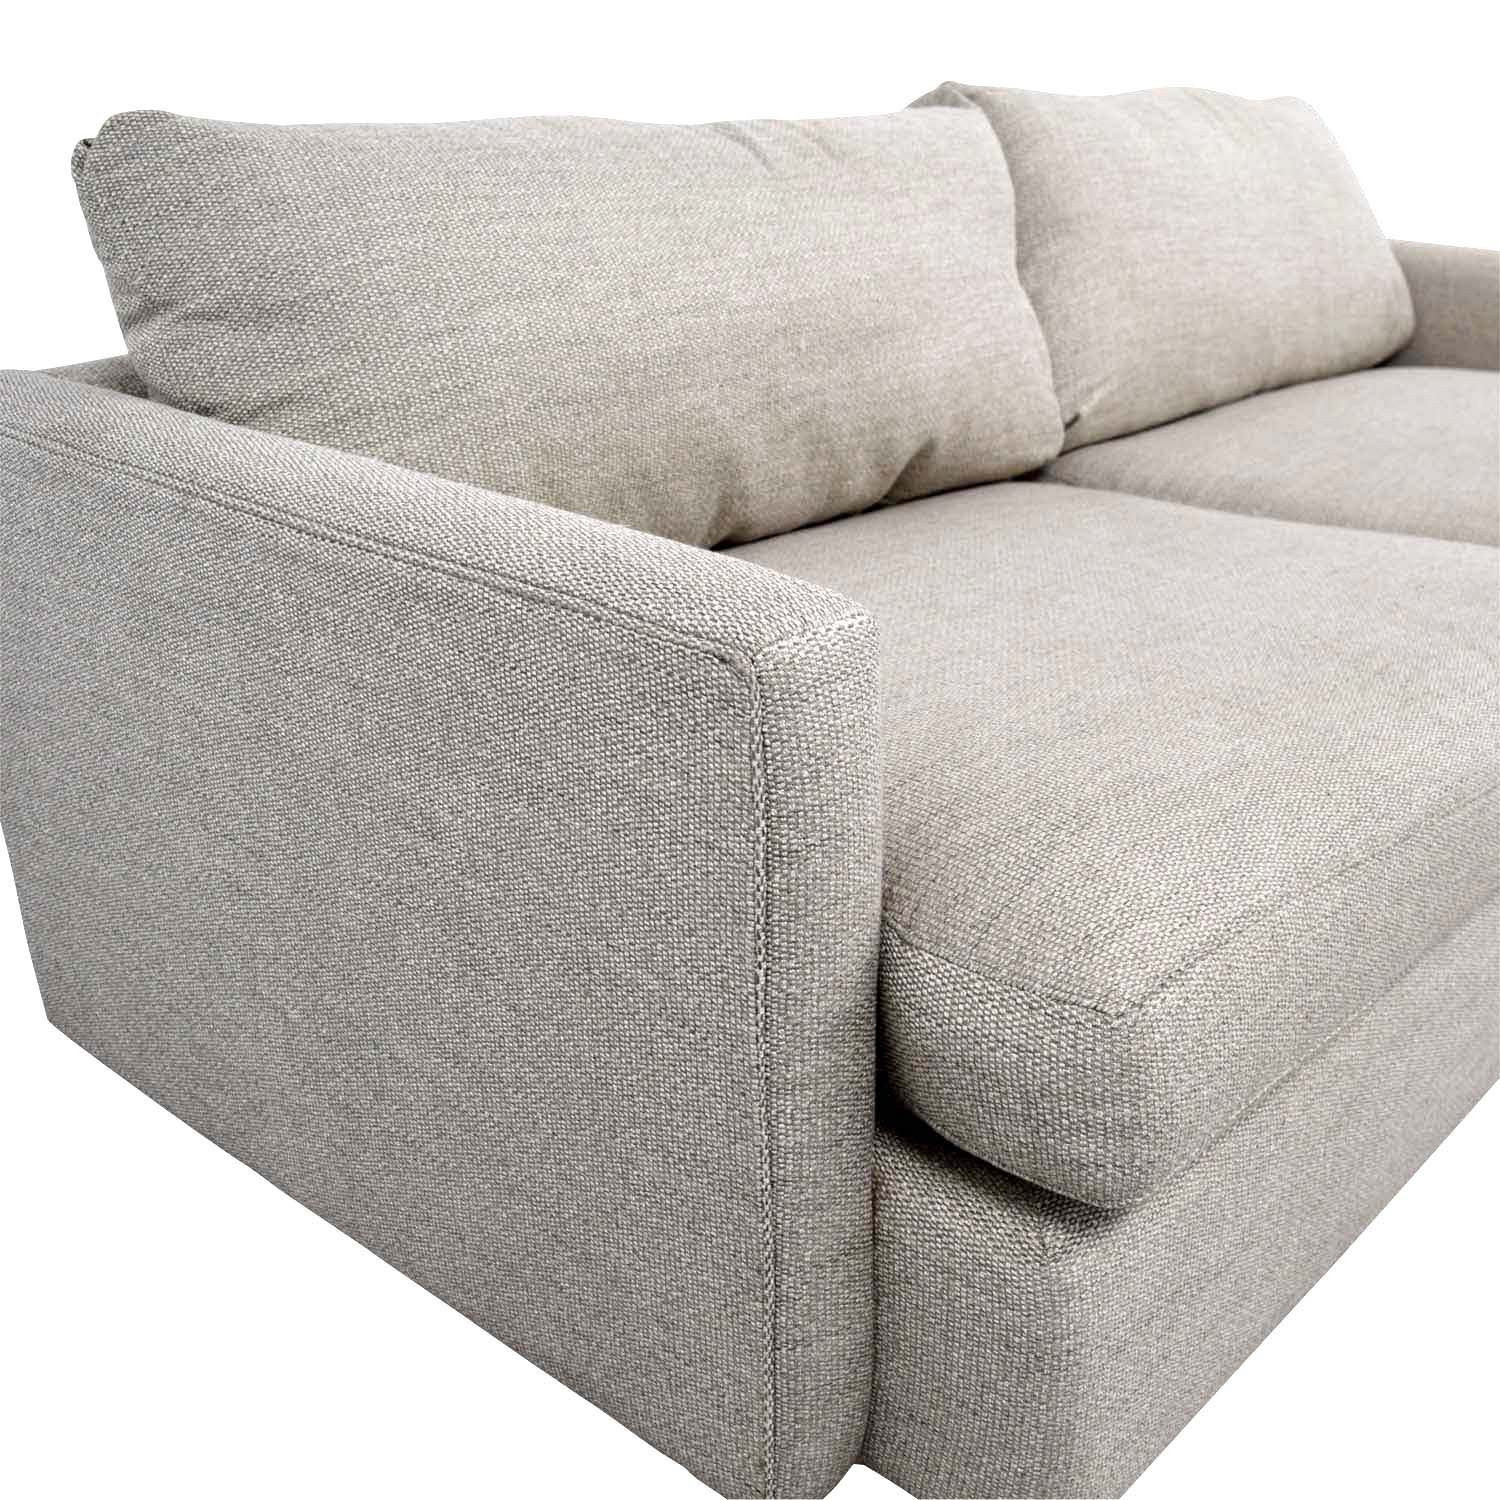 49% OFF - Crate & Barrel Crate & Barrel Lounge II Cement Grey Two Cushion  Sofa / Sofas